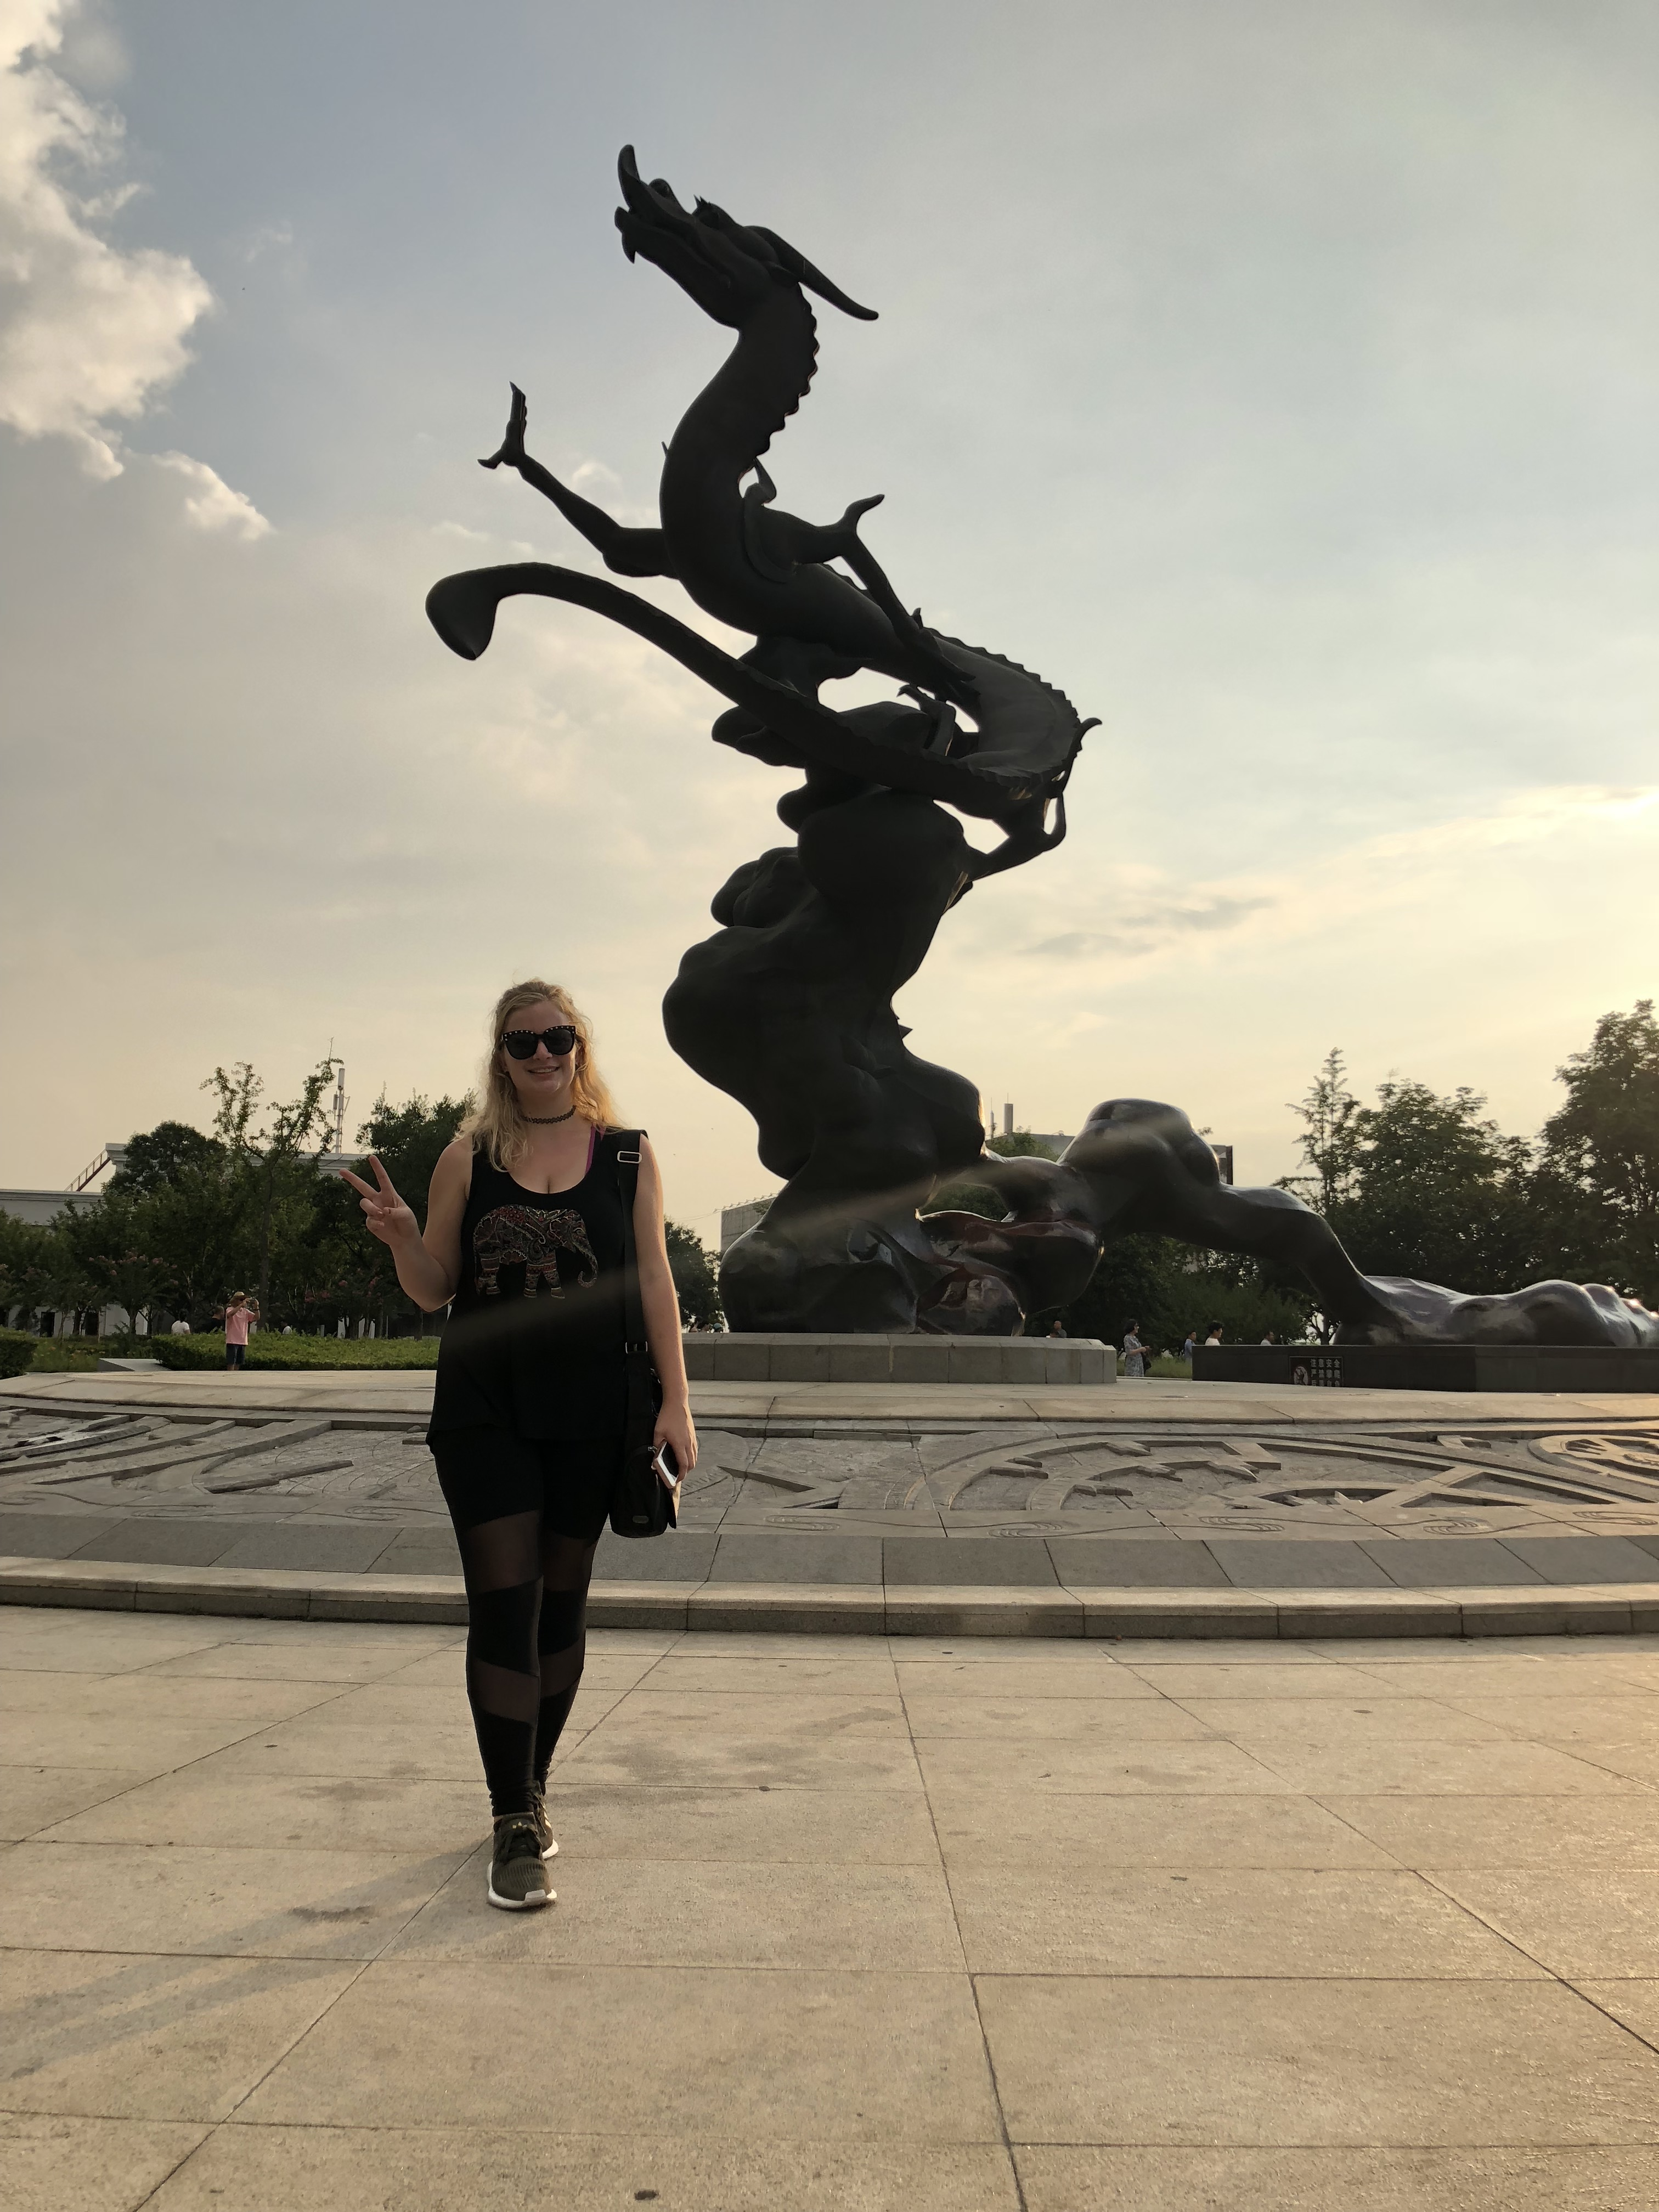 A picture of Kassandra on a trip to Nanjing during her internship in Shanghai